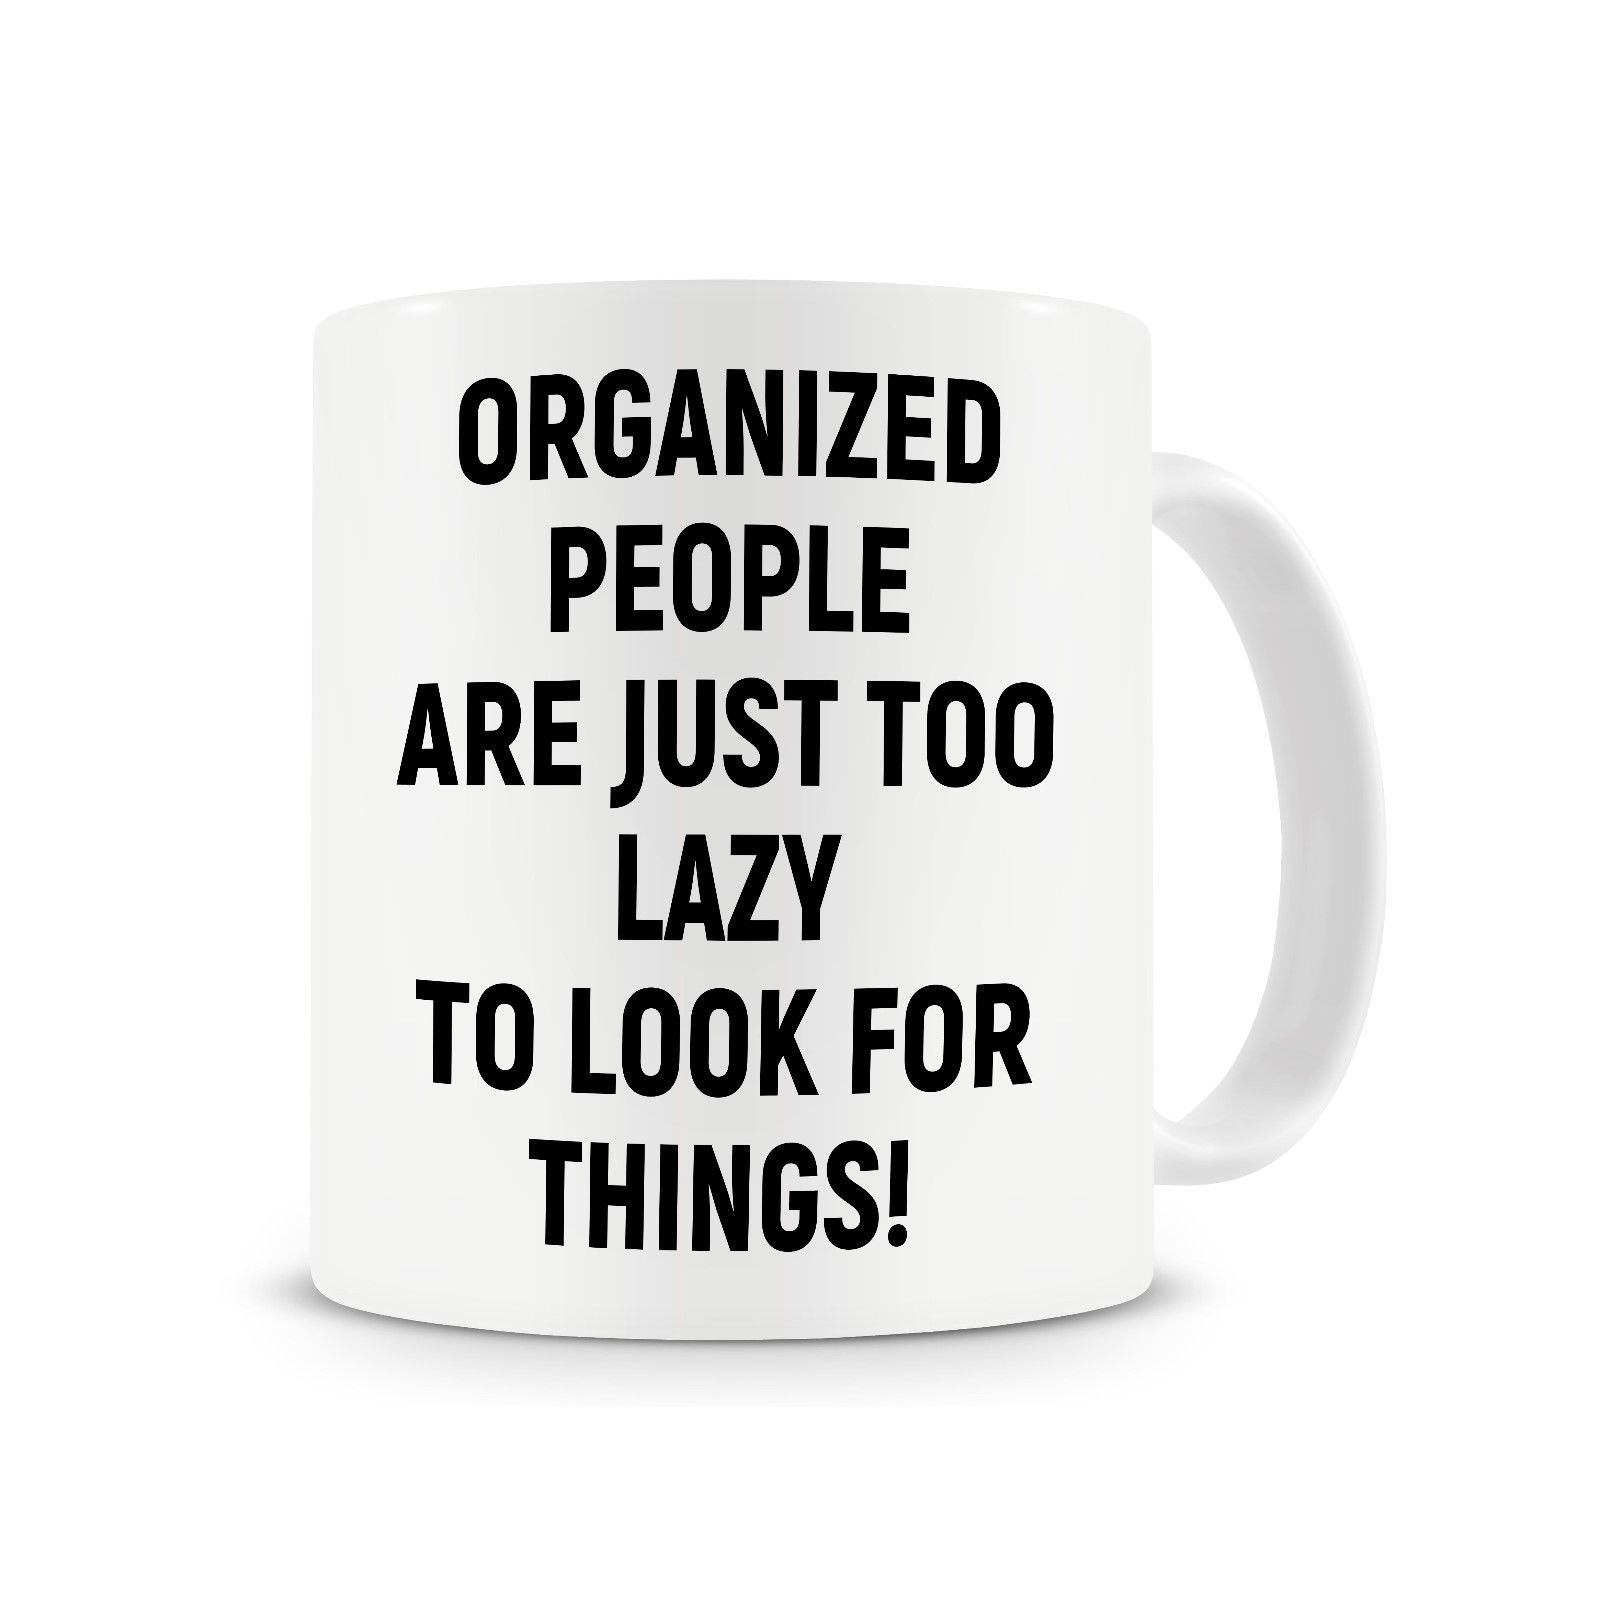 Funny Work Mugs Us 4 98 Organized People Funny Coffee Mug Office Gift Mug Work Mug Cup With Stirring Spoon Gift For Him In Mugs From Home Garden On